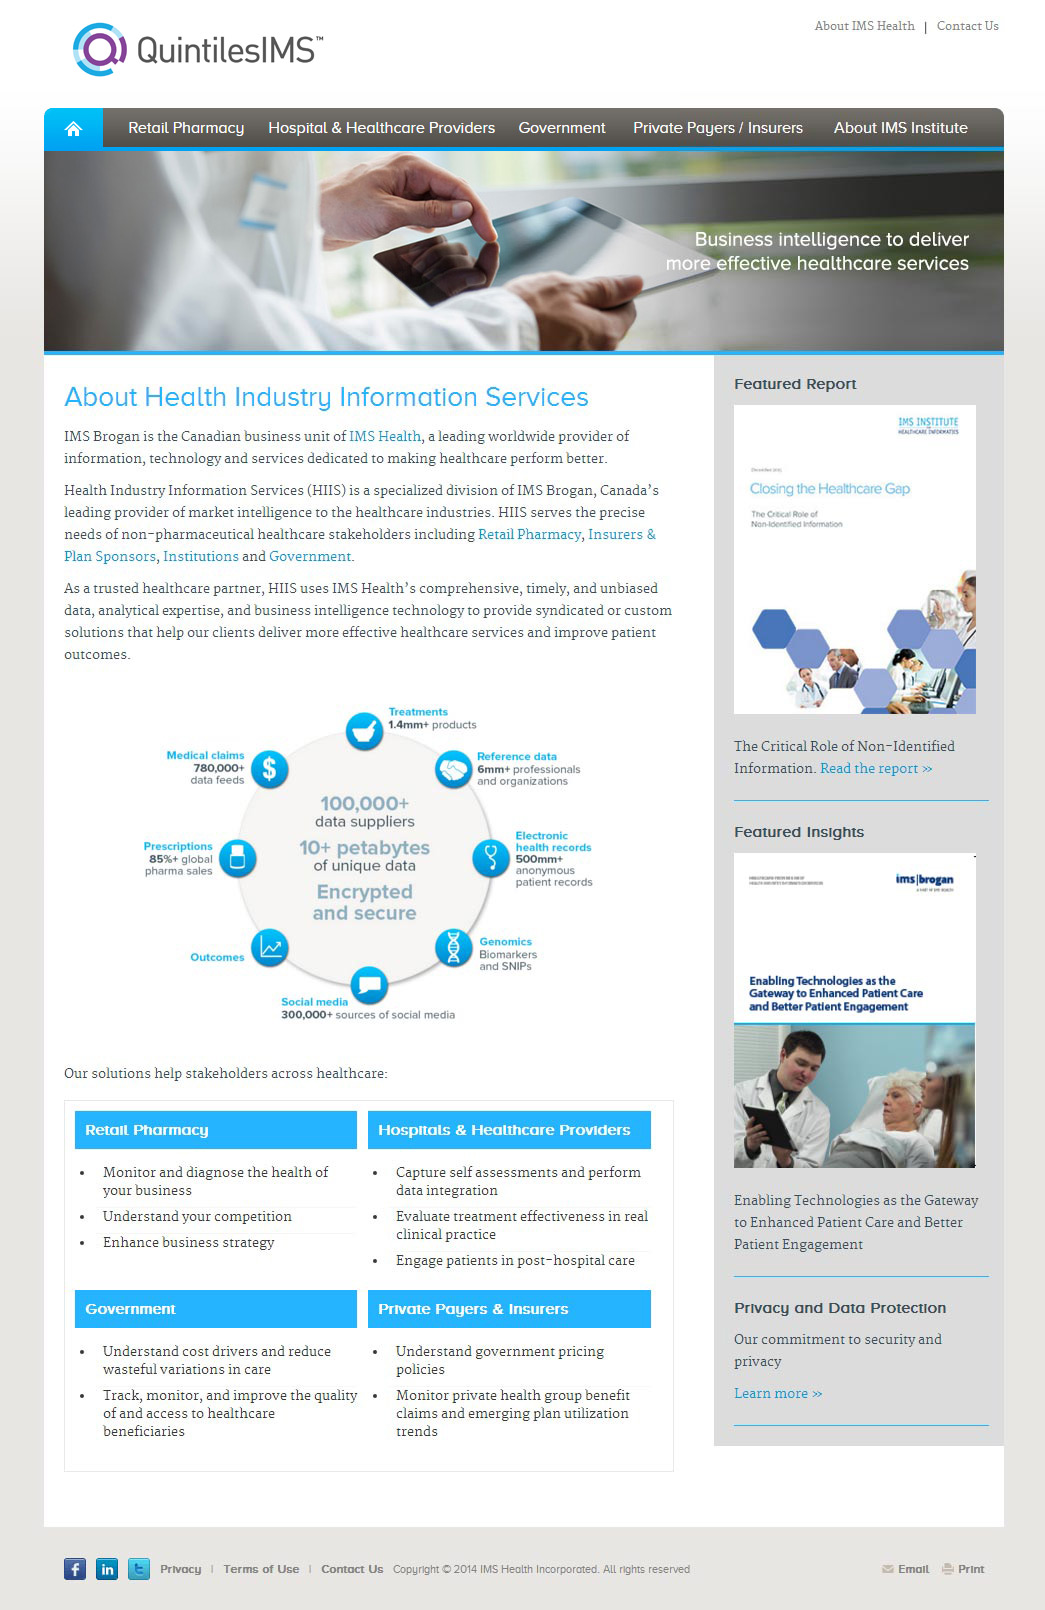 Quintiles IMS HIIS Website